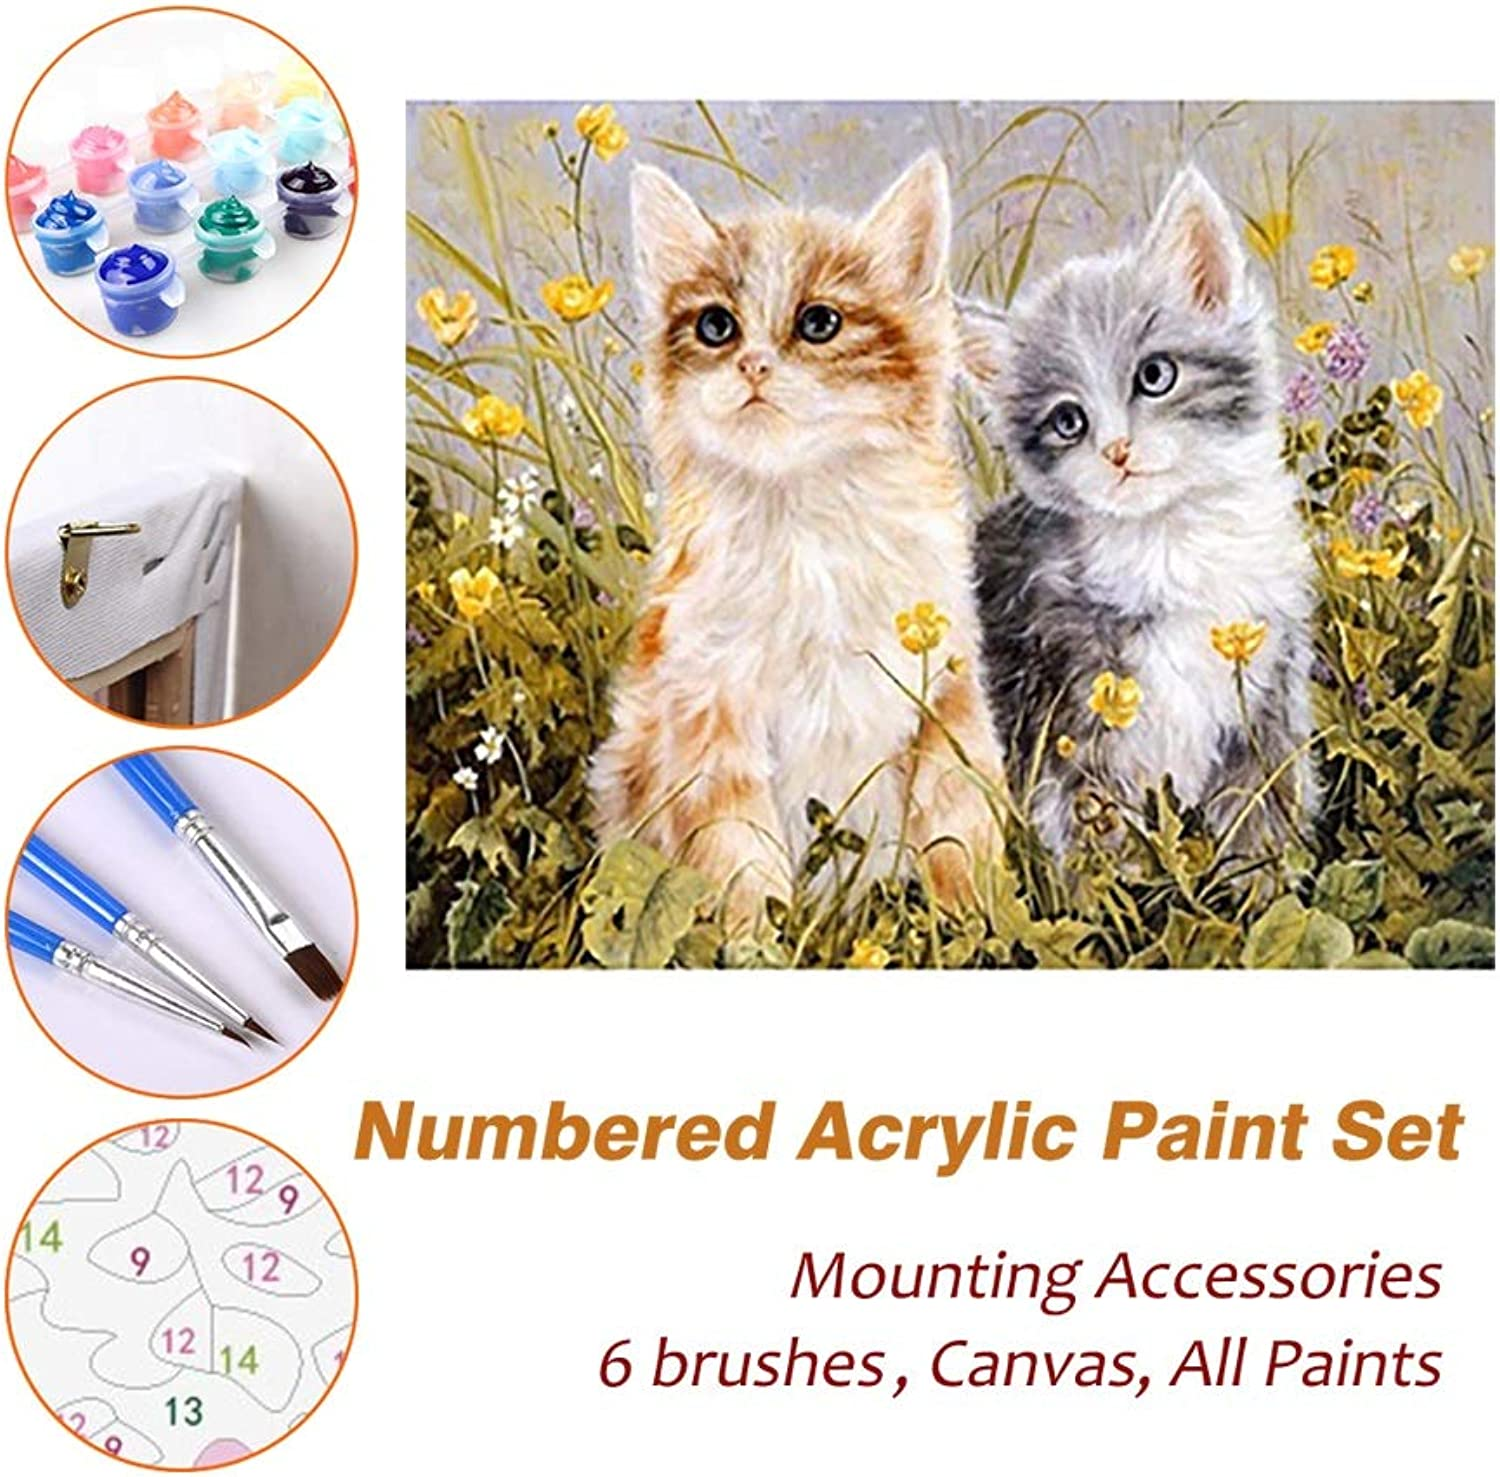 Puzzle House Paint Max Paint By Numbers Kits For Kids Adults Beginner Teens Pine Framed DIY Oil Acrylic Painting Paint Art Brush Sets, Two Kitties 531 (color   With Pine Frame, Size   500mm x 650mm)